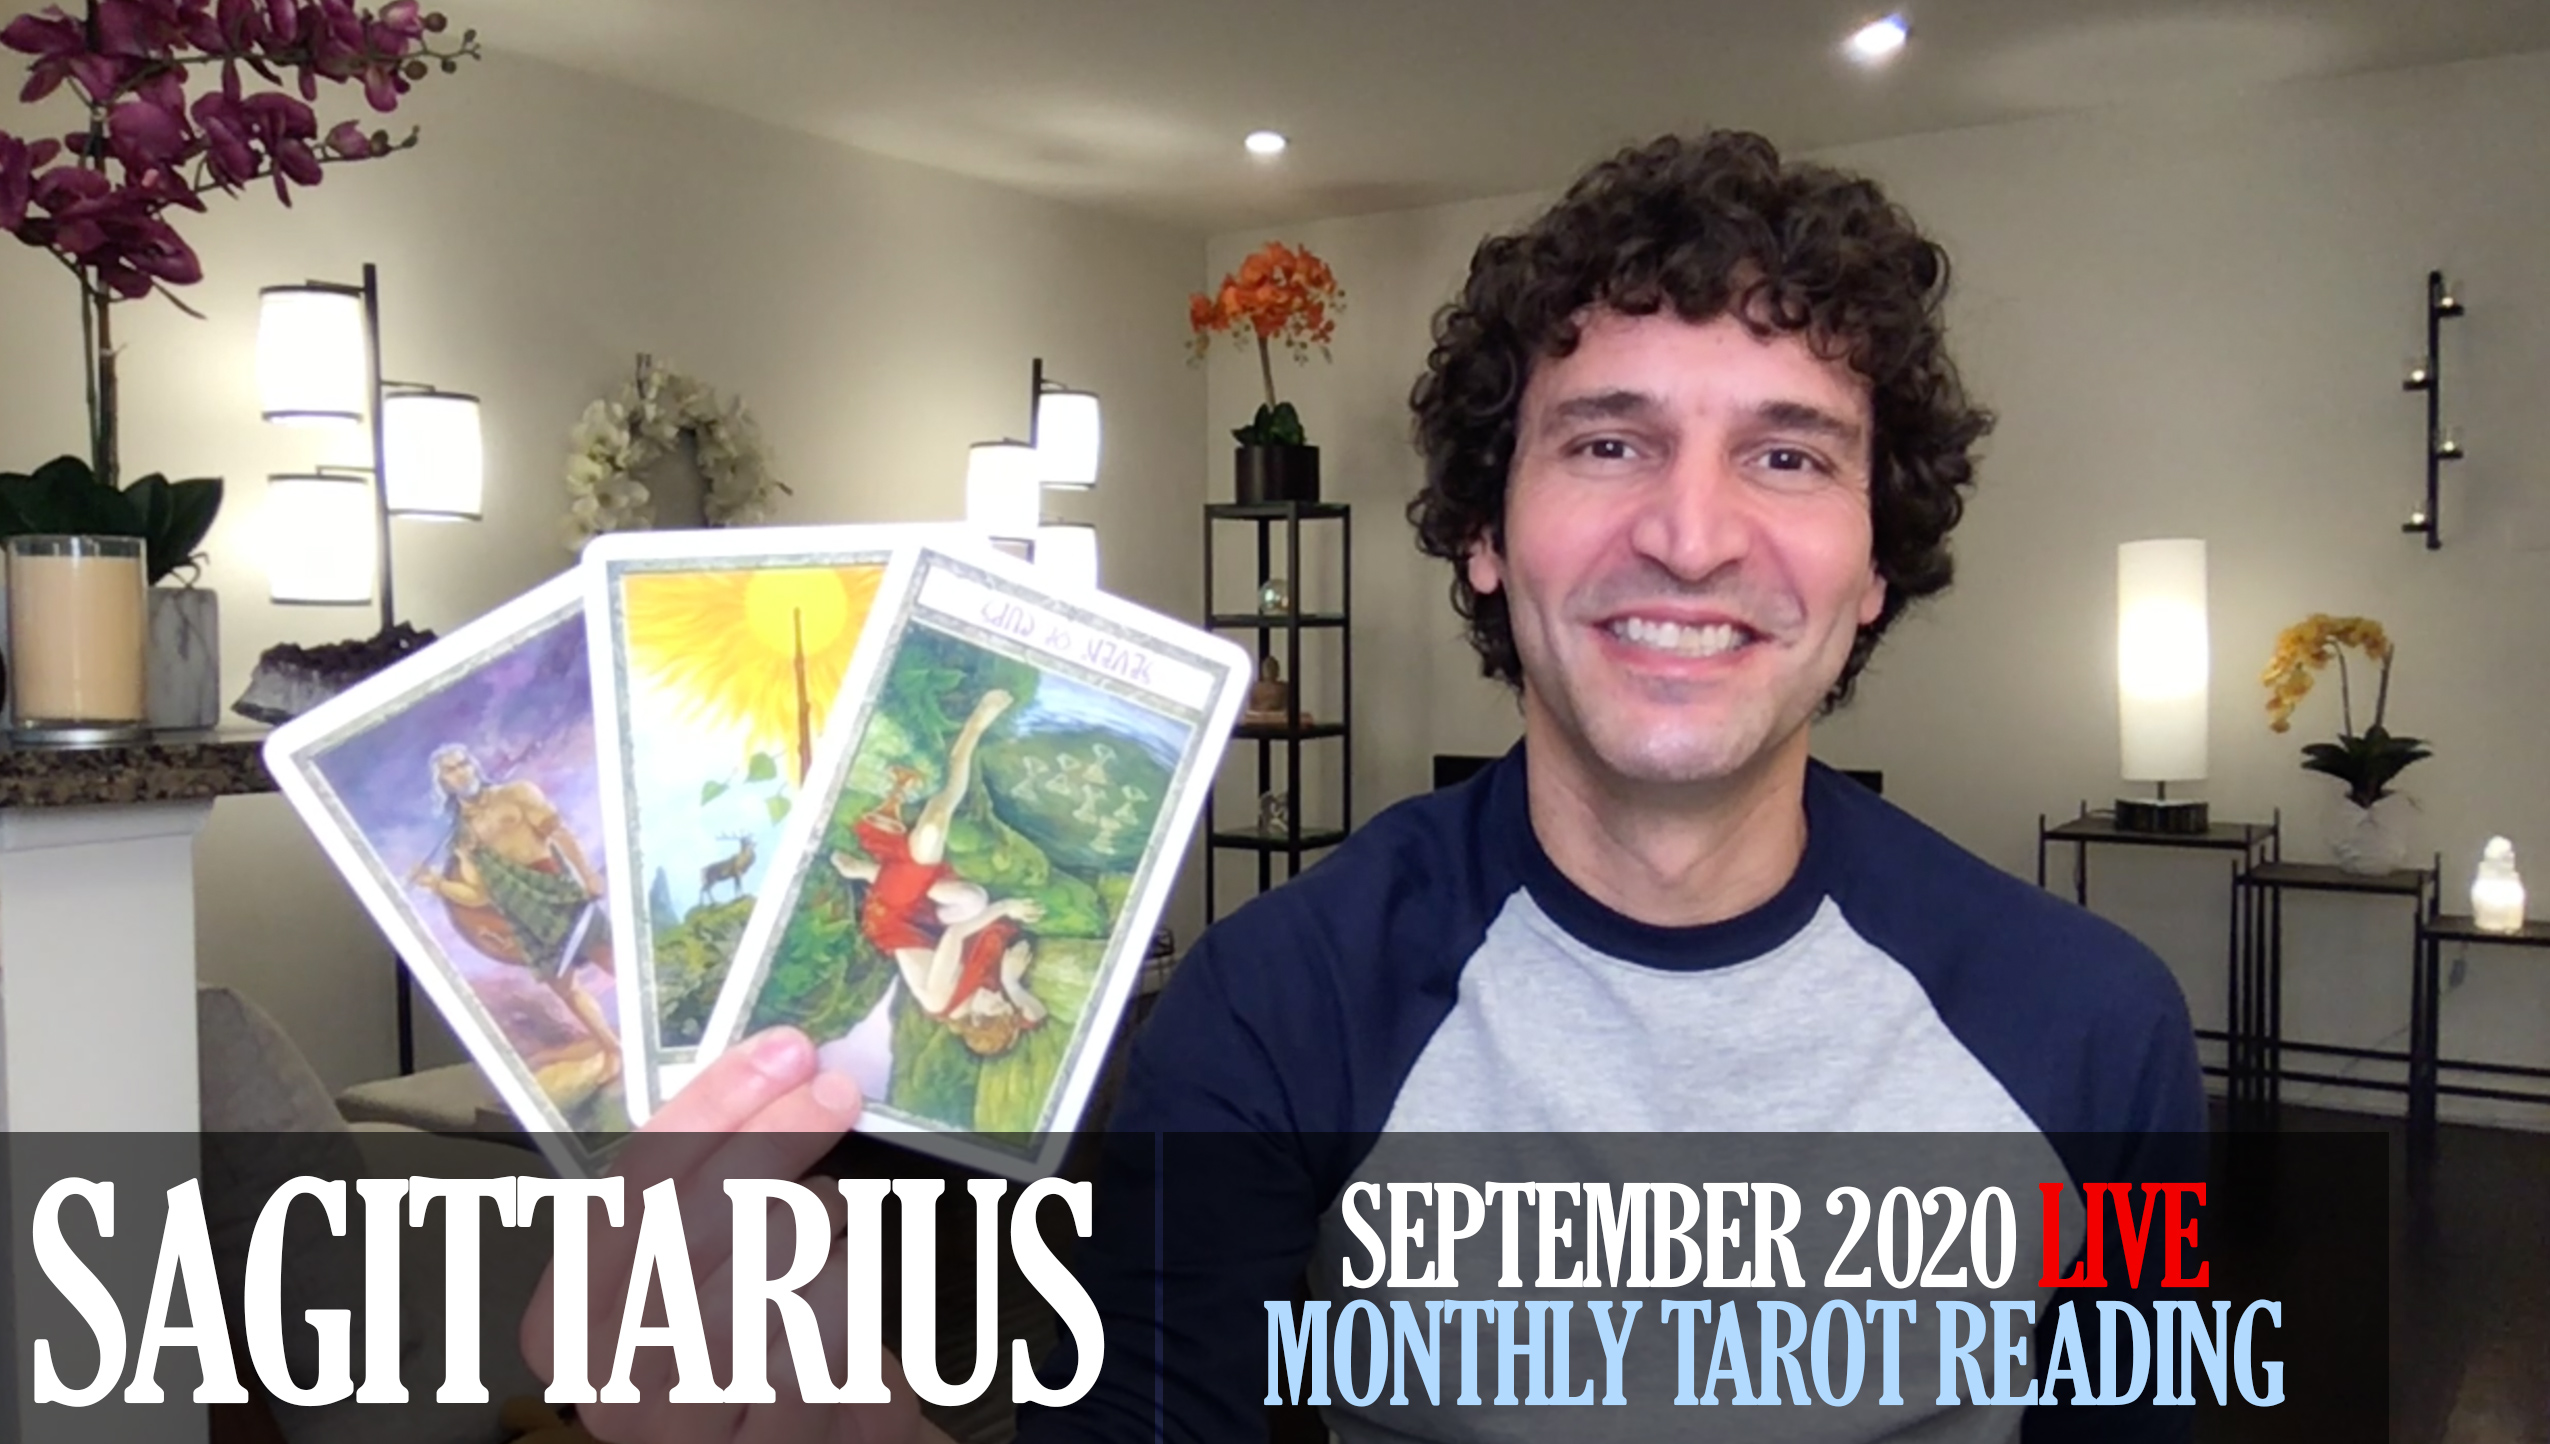 Sagittarius September 2020 Tarot Reading